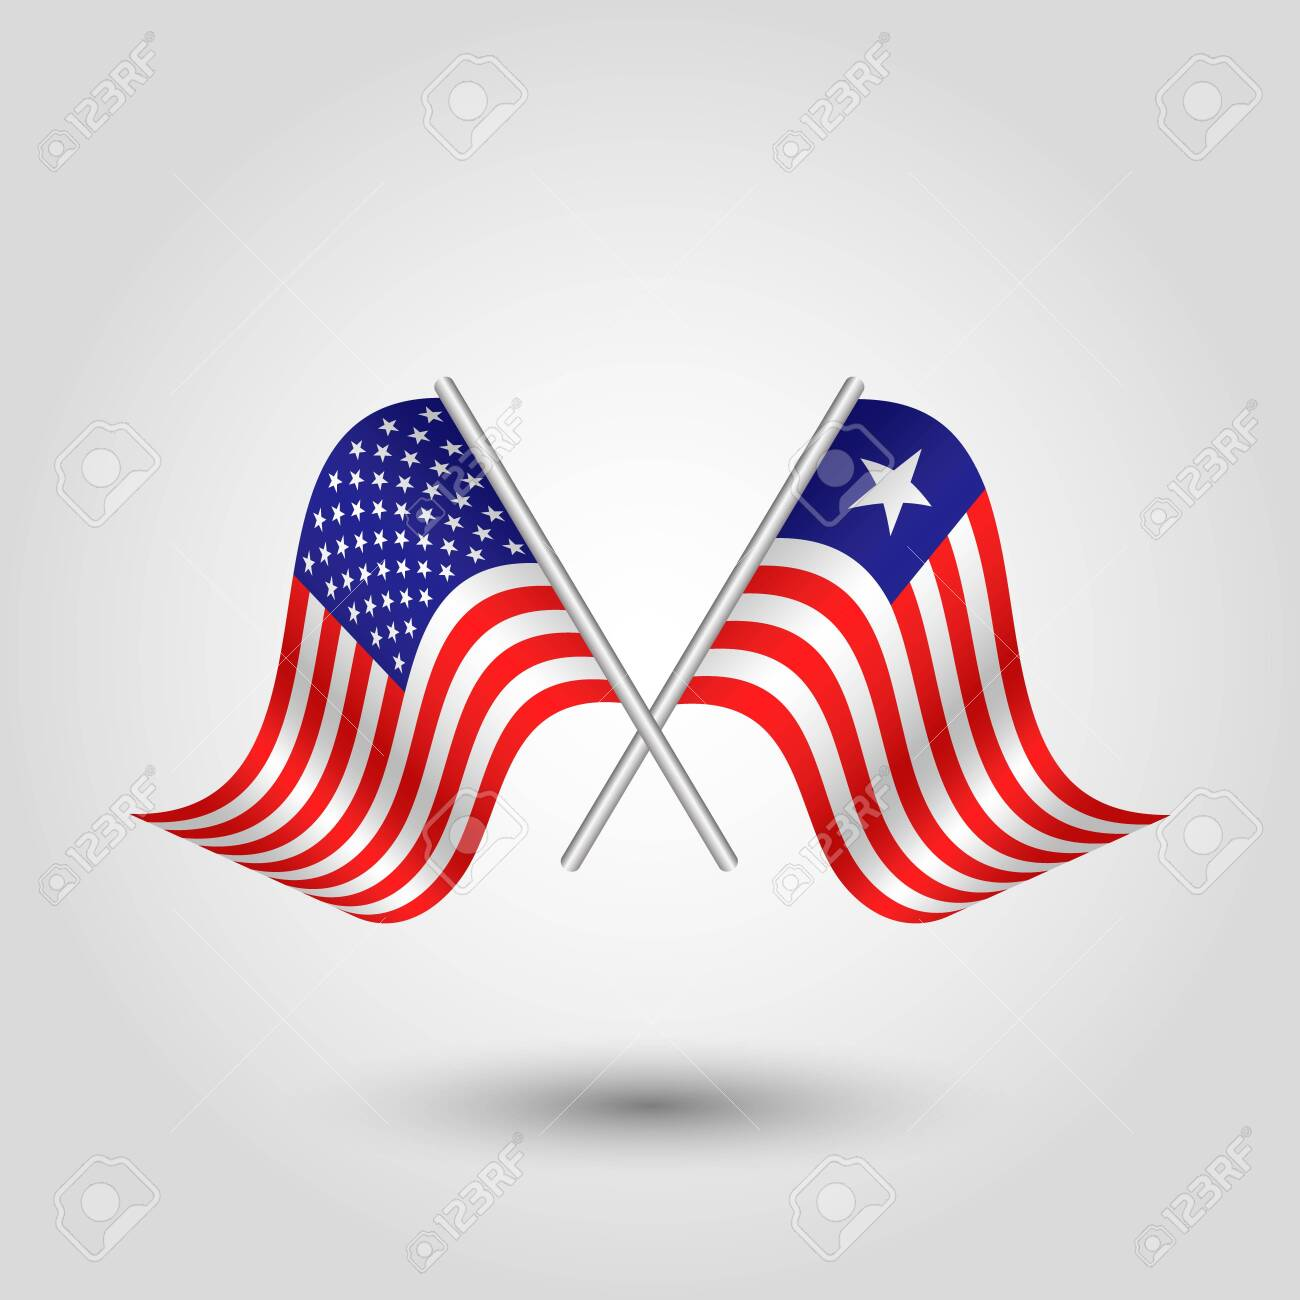 vector two crossed american and liberian flags on silver sticks - symbol of united states of america and liberia - 128376499